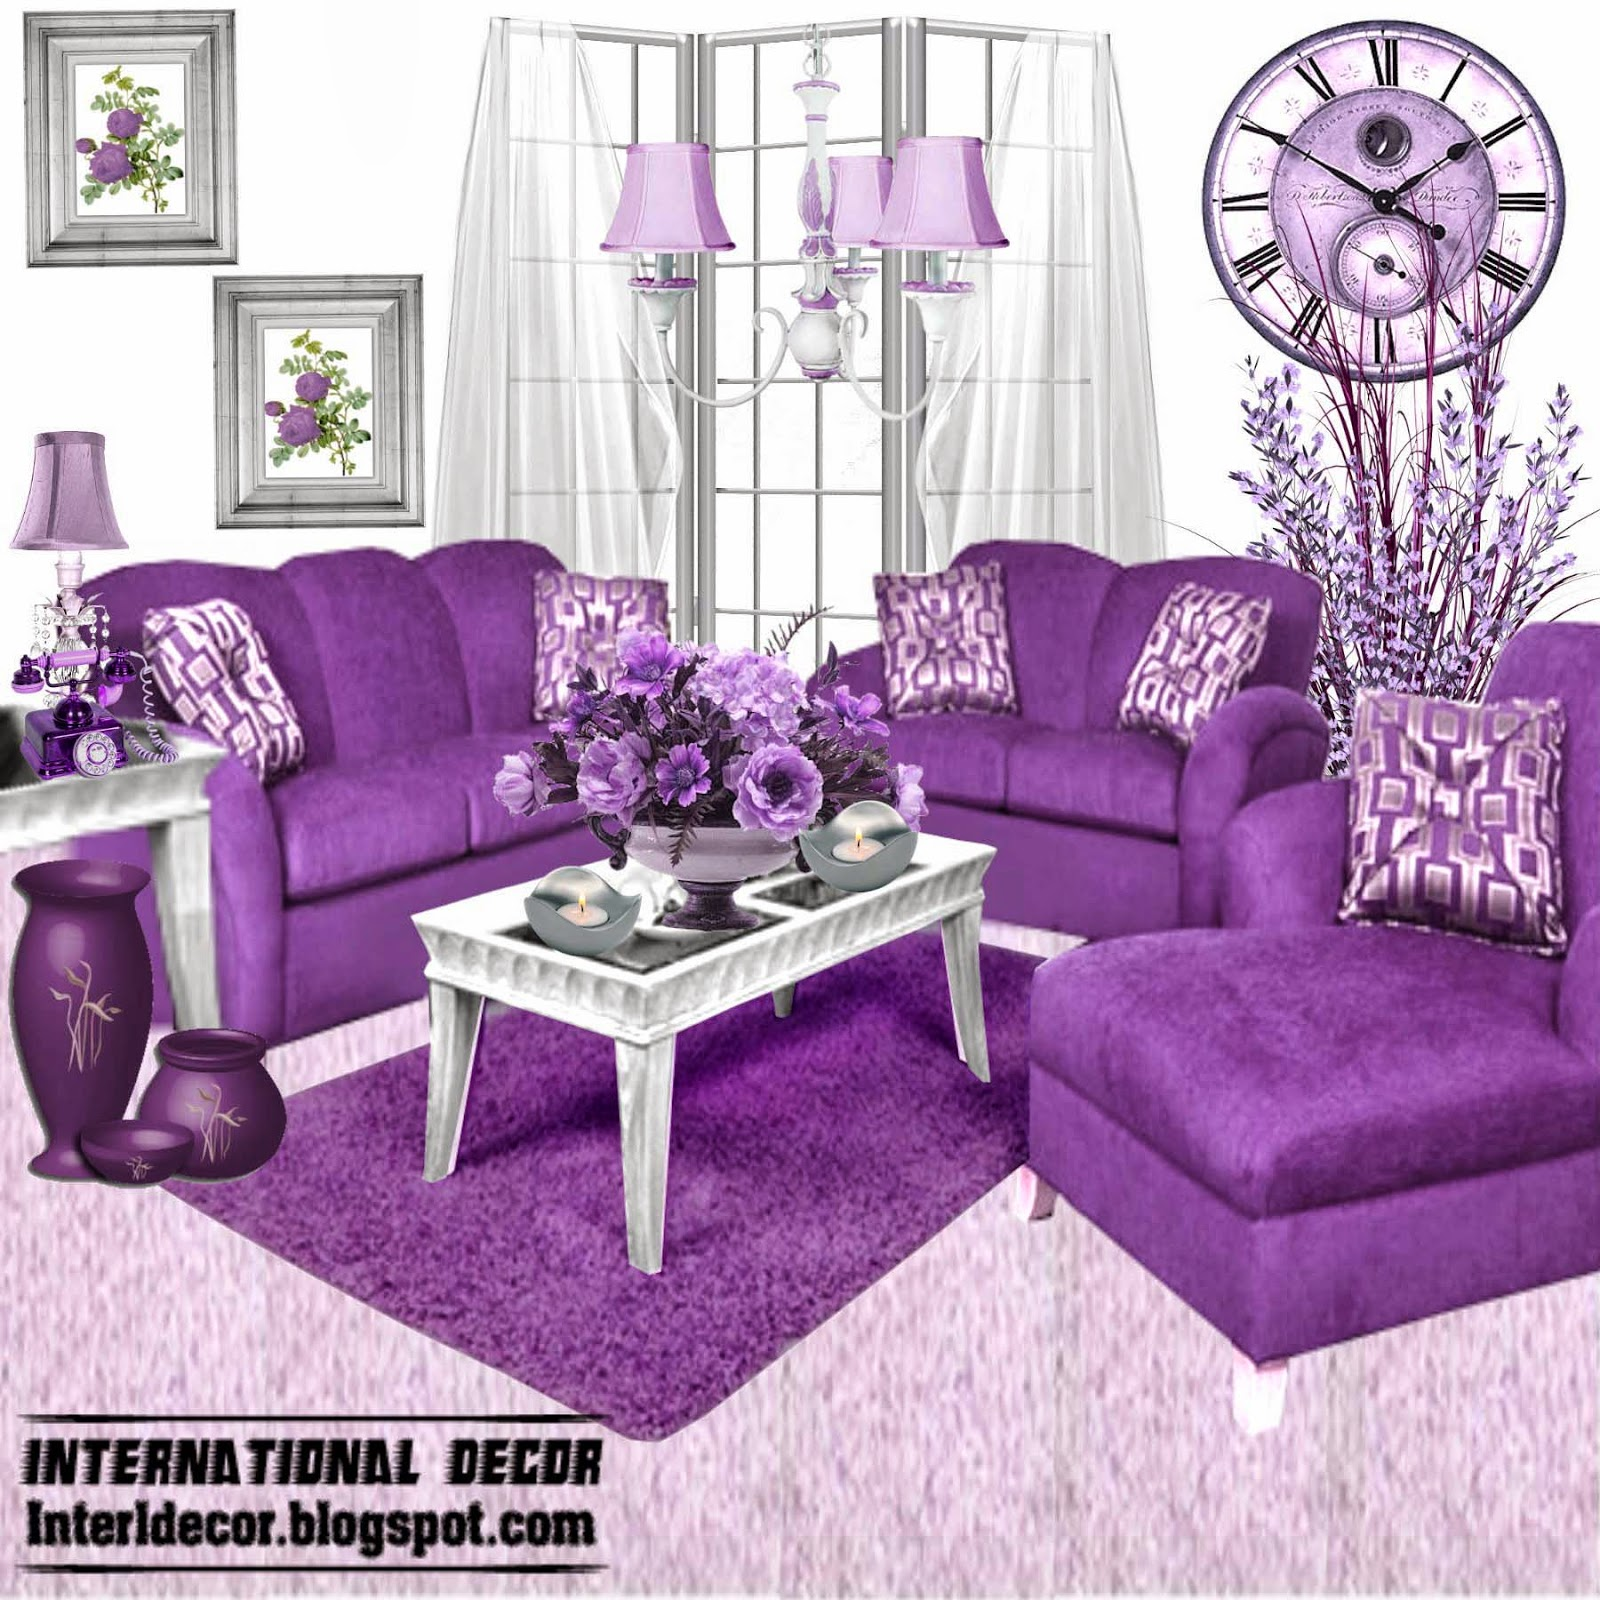 Purple furniture for the home pinterest purple for 4 living room chairs